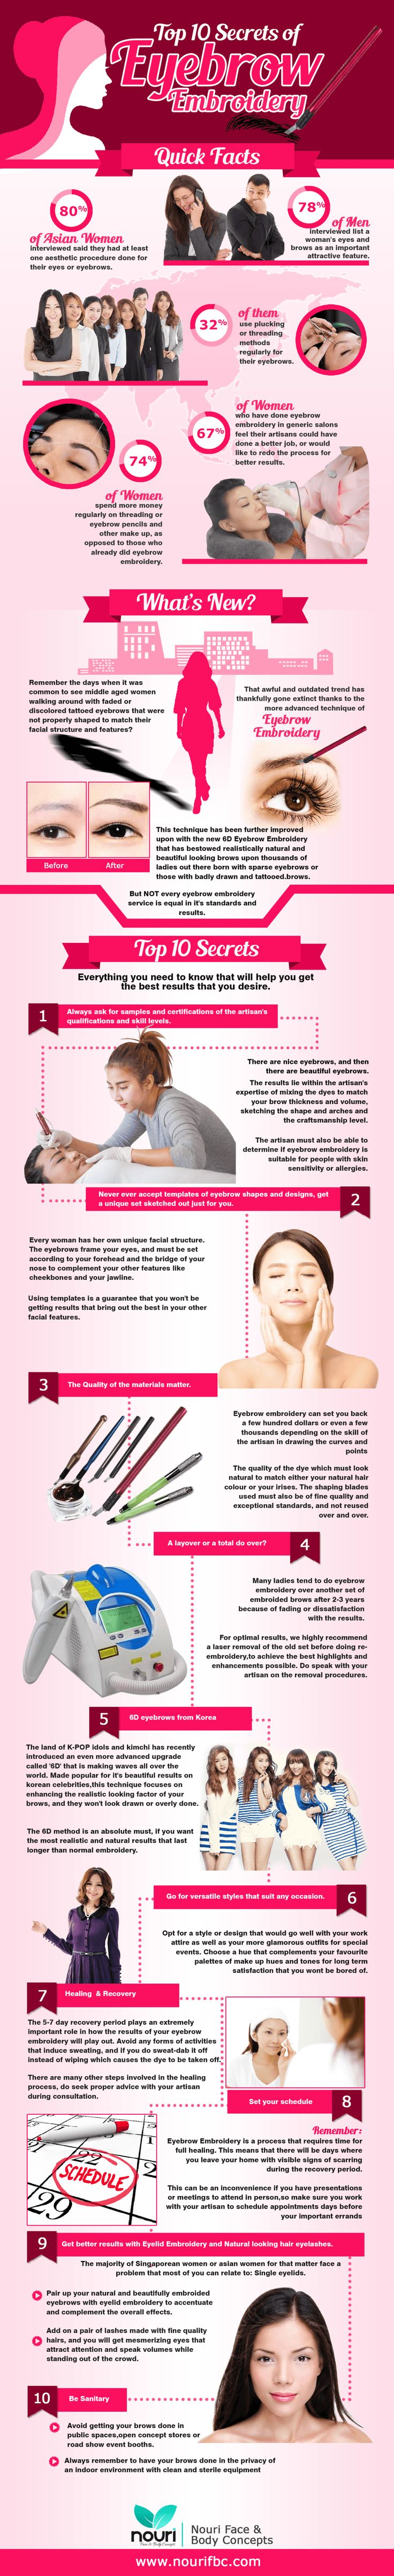 Tips For Beautiful Eyebrow Embroidery